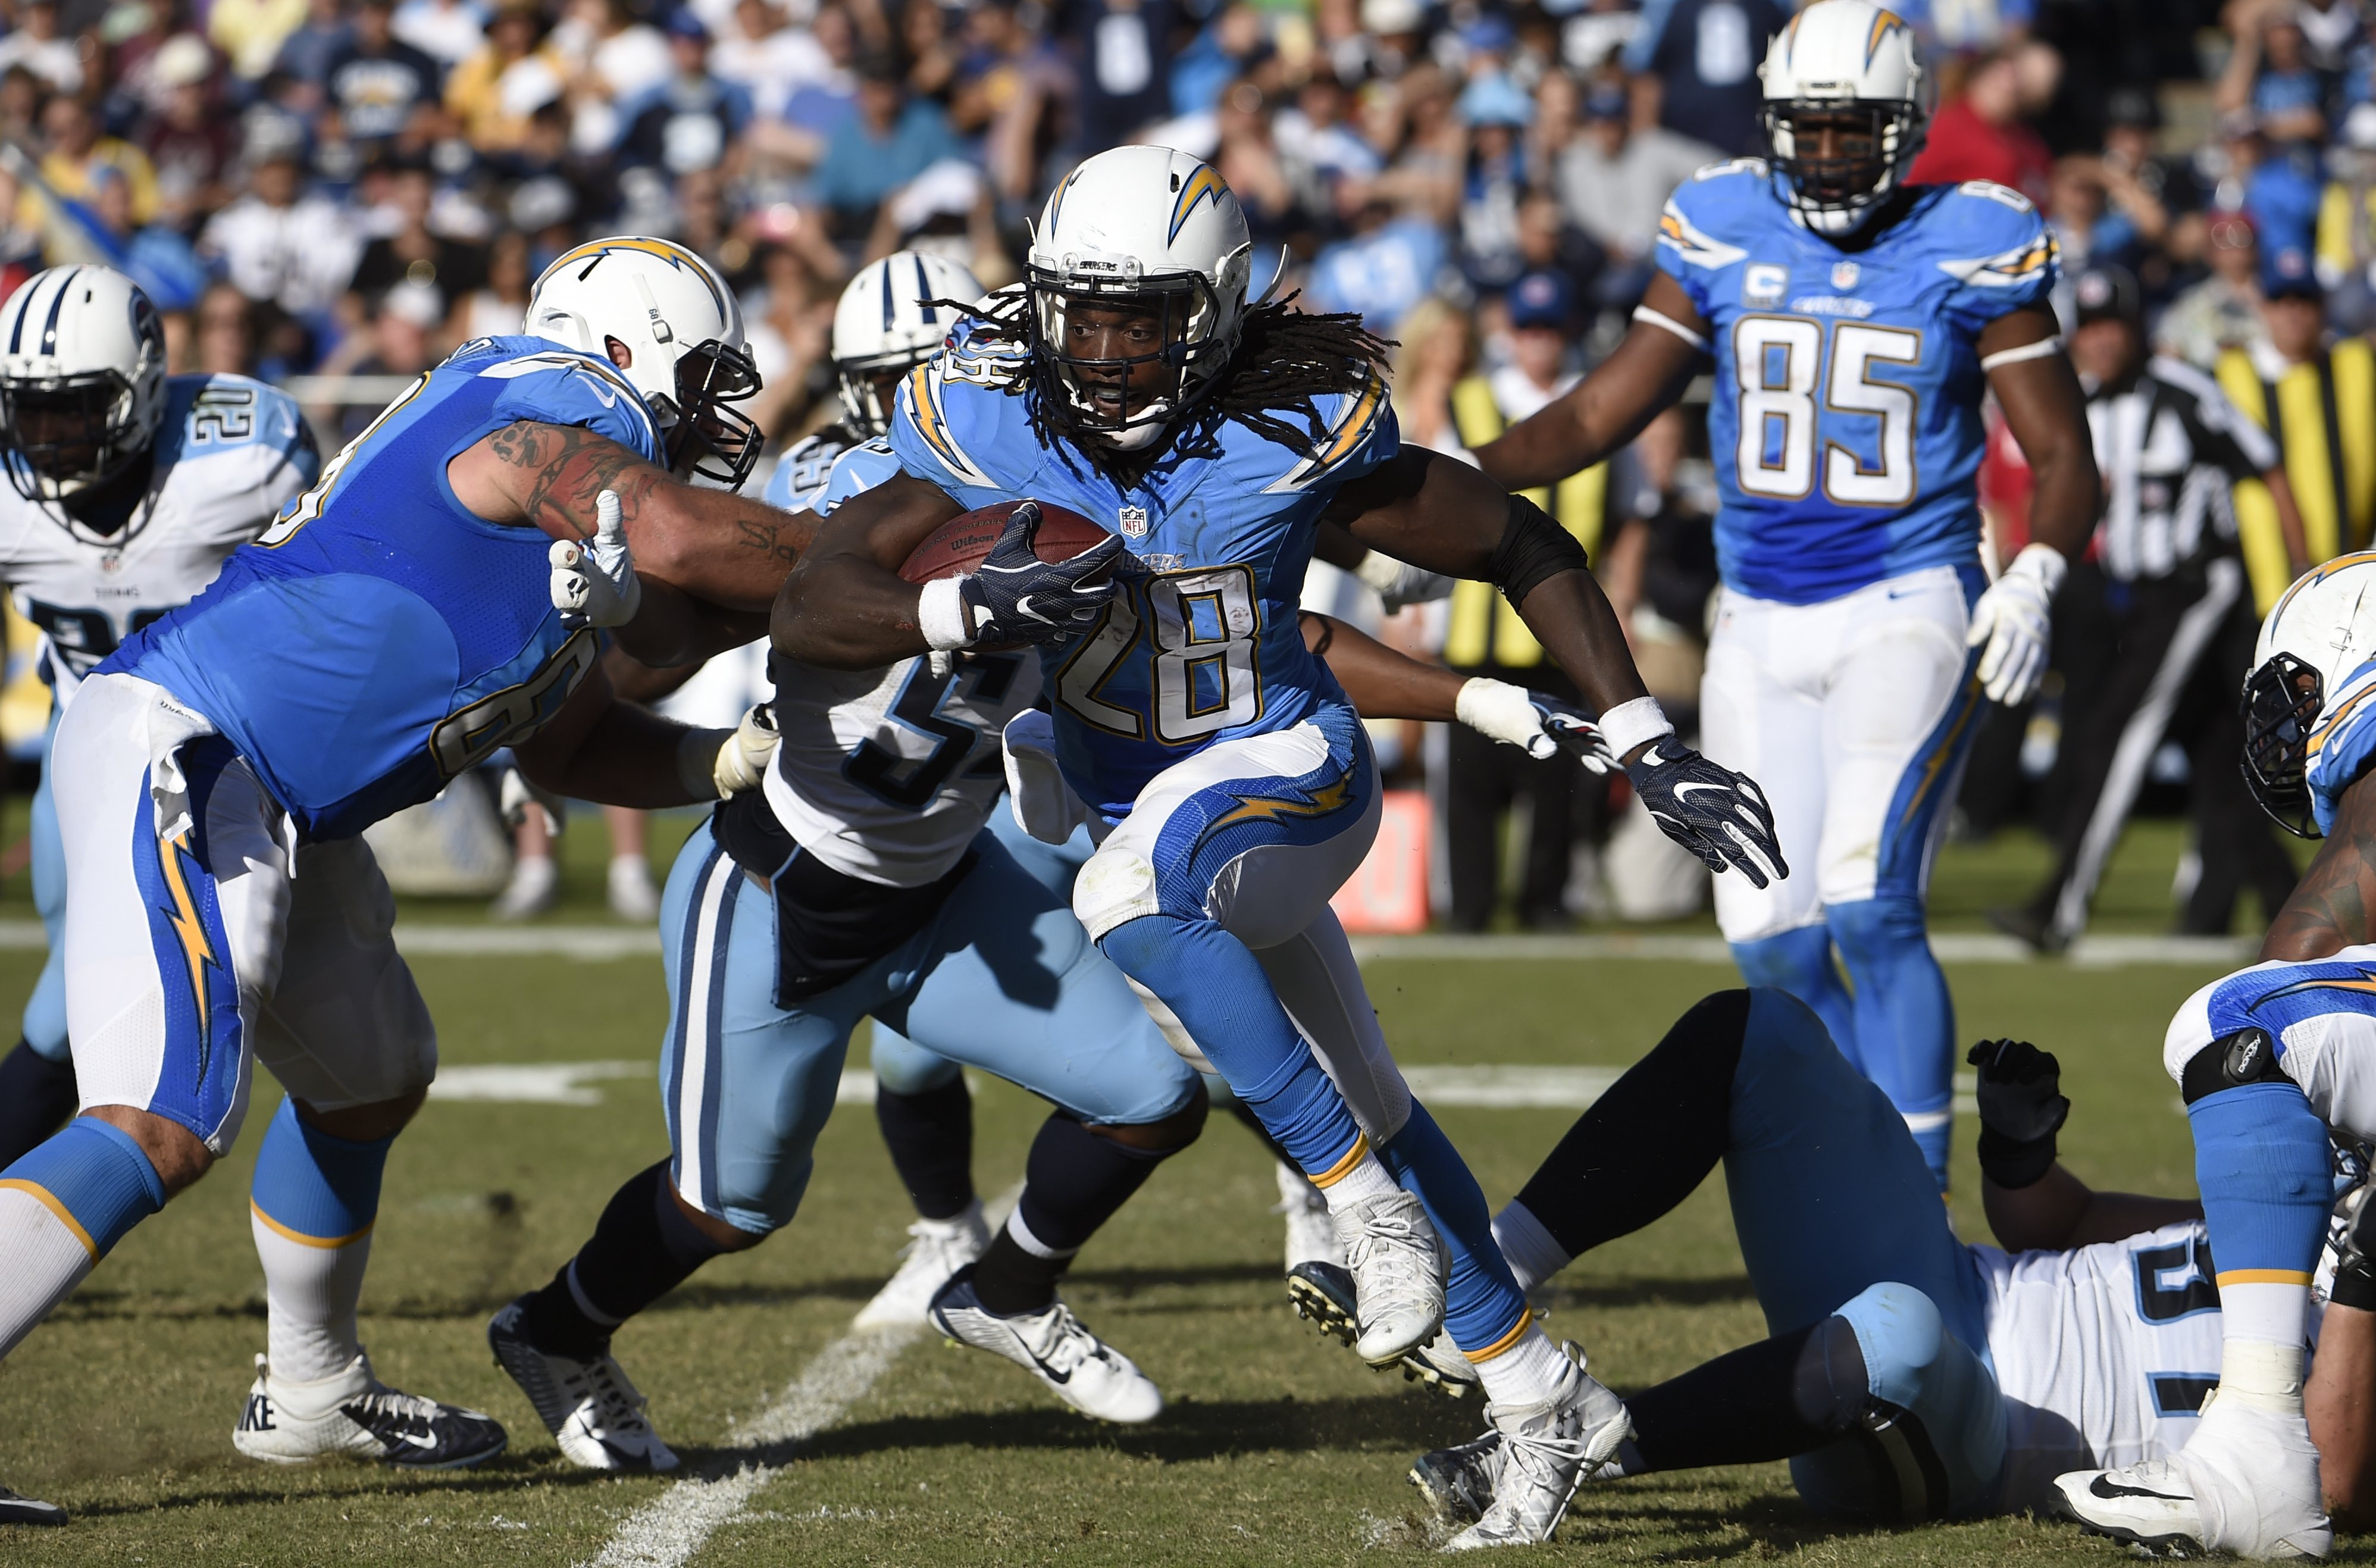 San Diego Chargers running back Melvin Gordon (28) runs with the ball during the first half of an NFL football game against the Tennessee Titans, Sunday, Nov. 6, 2016, in San Diego. (AP Photo/Denis Poroy)